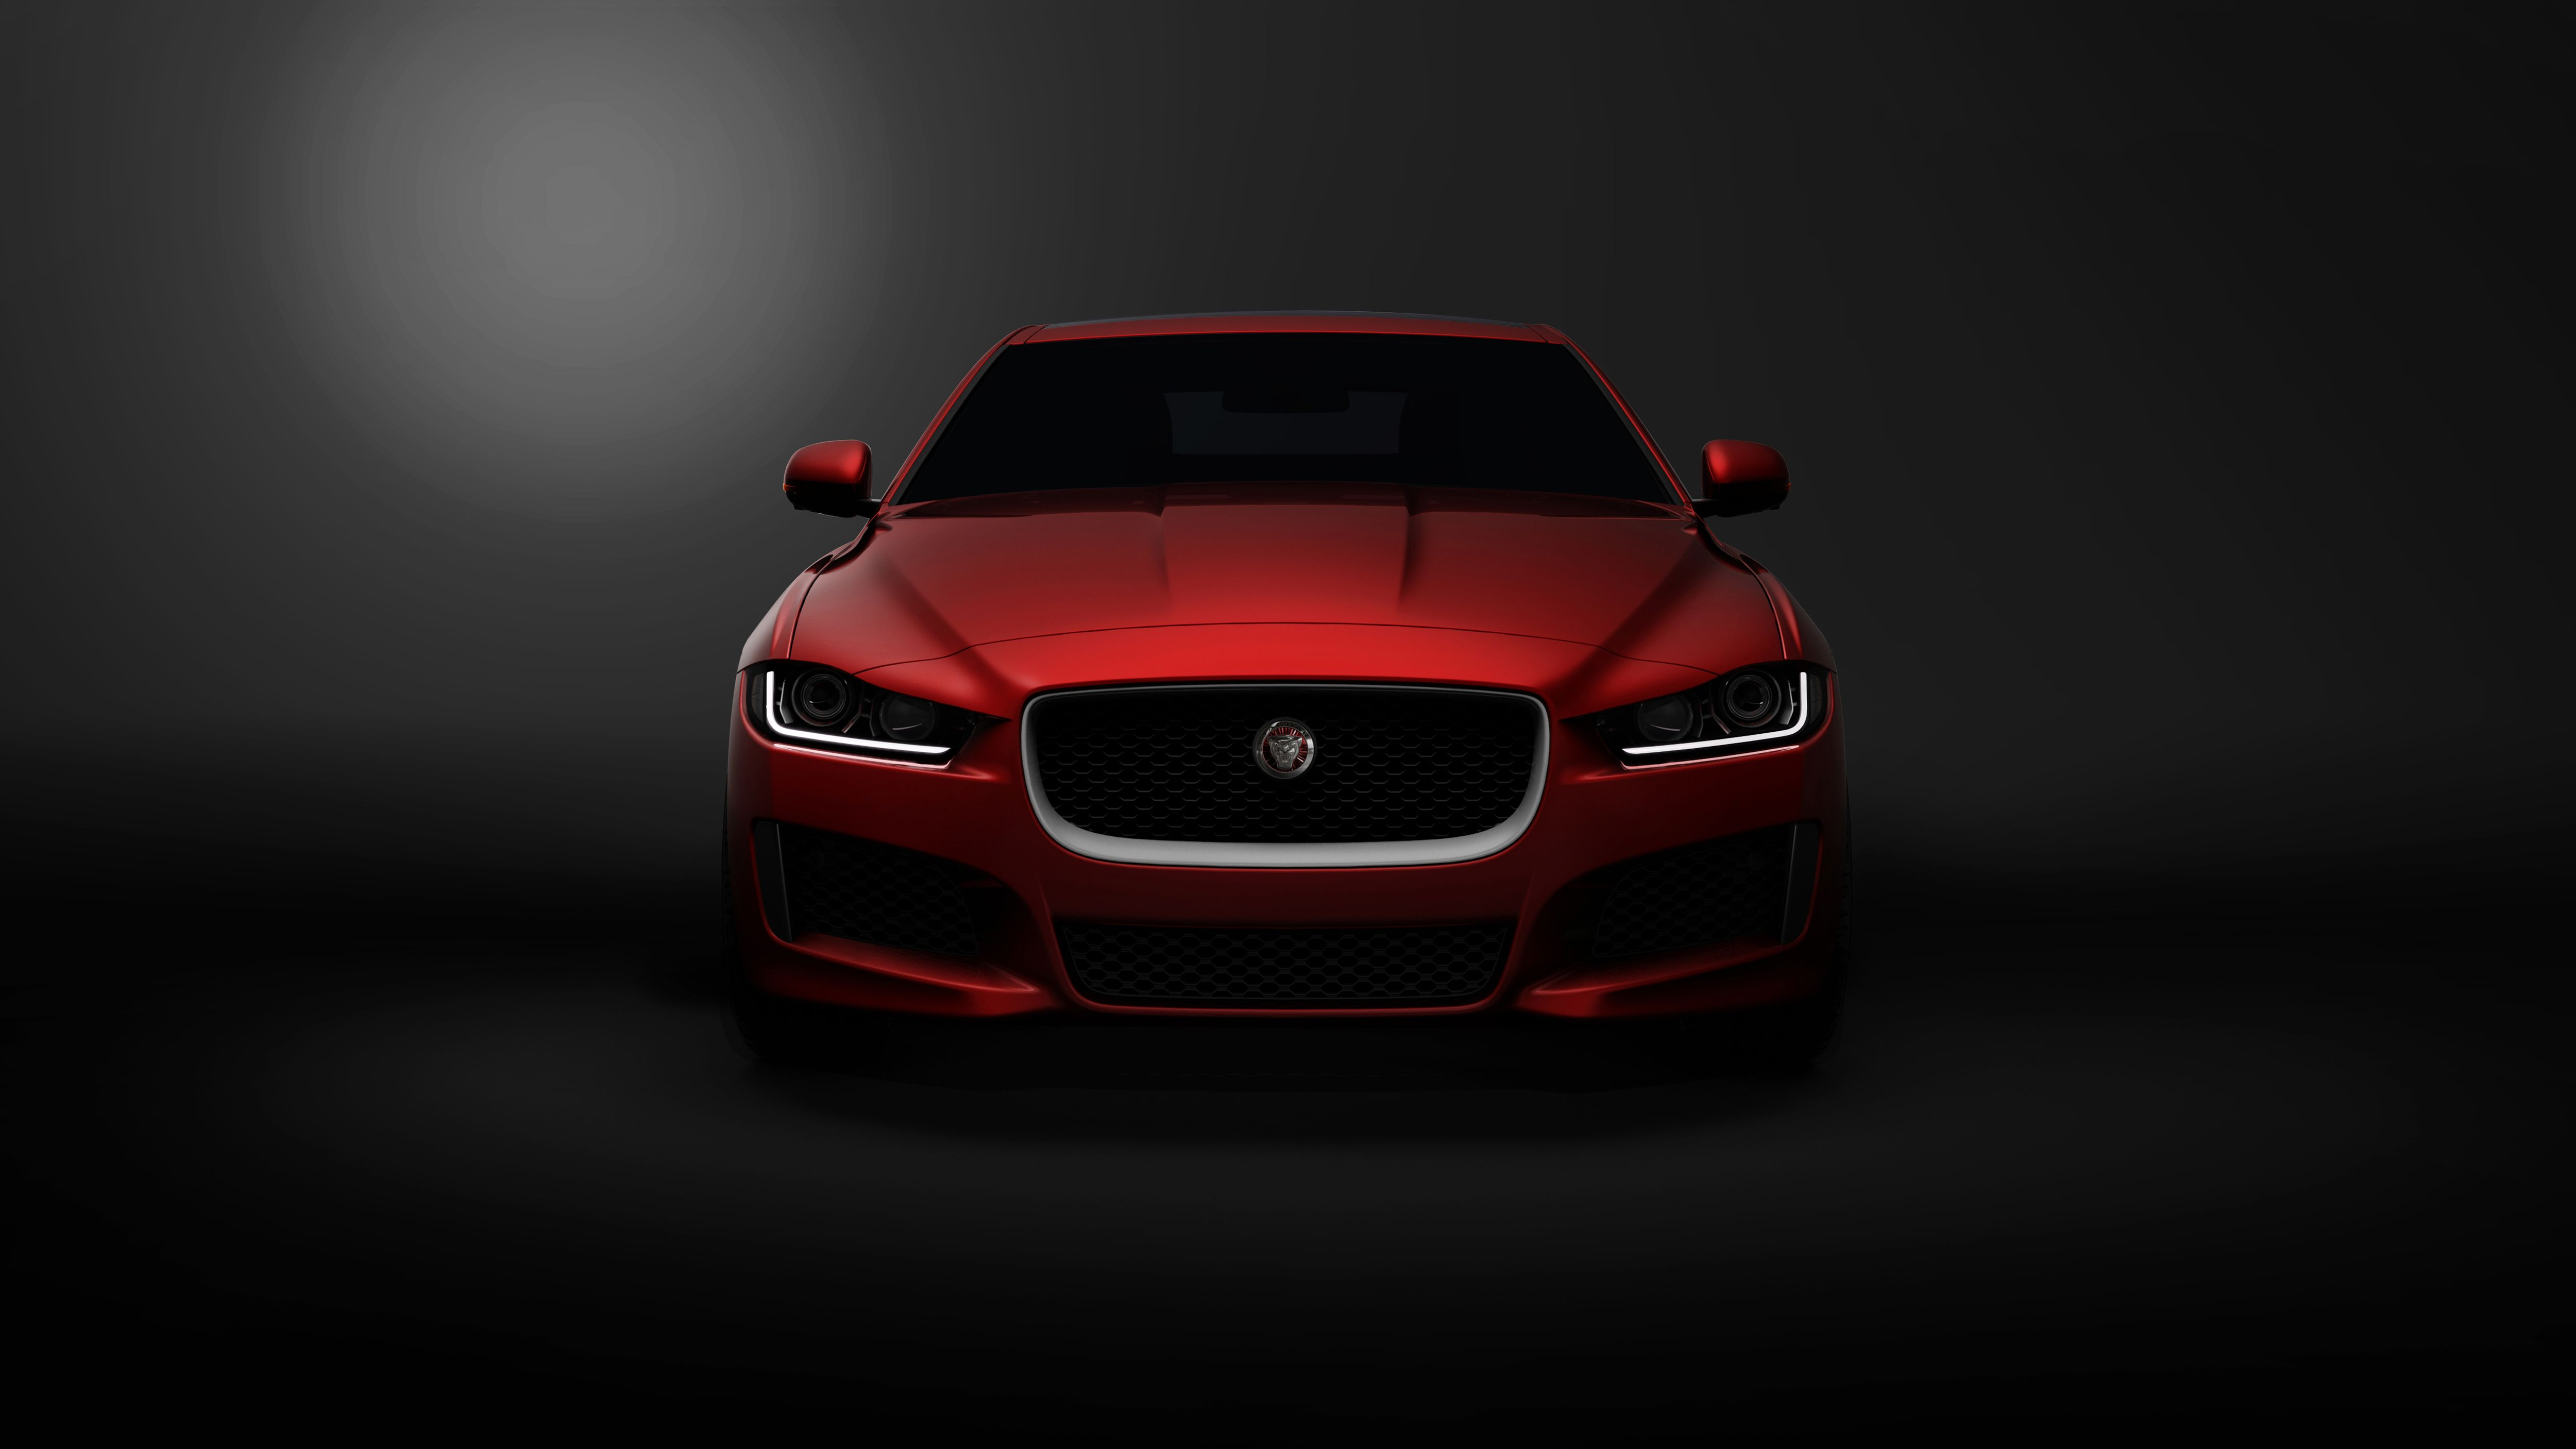 The Jaguar XE